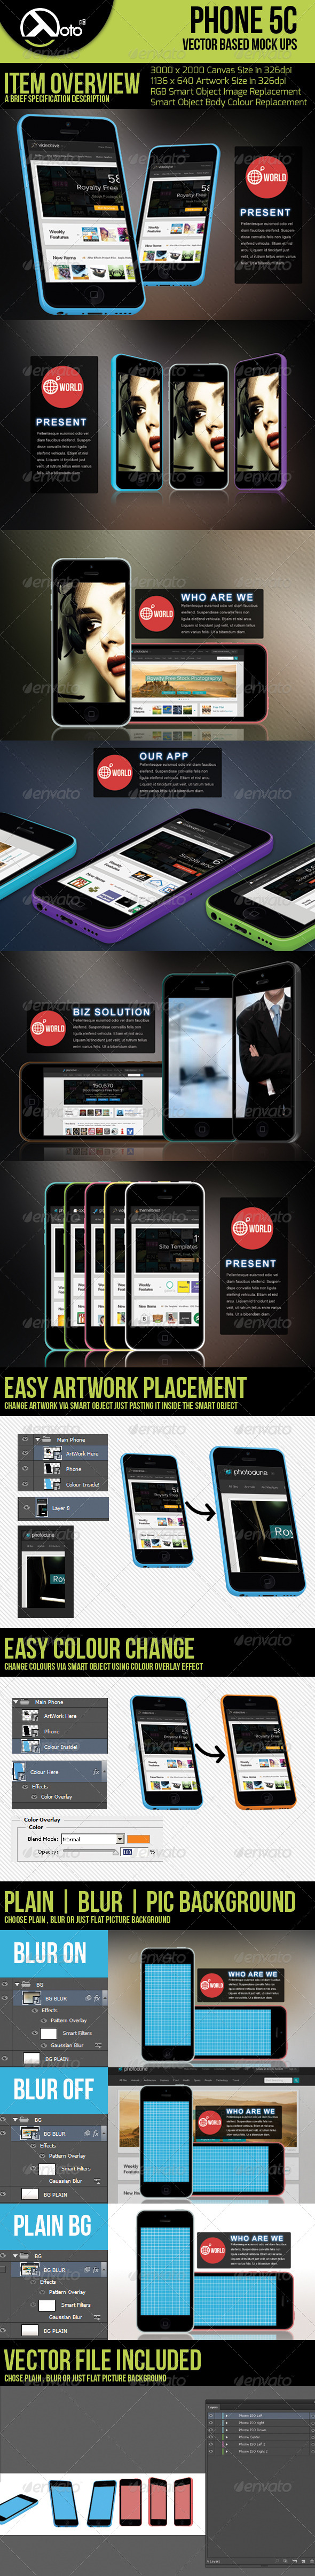 GraphicRiver Phone 5c Vector Based Mock-up 5667376